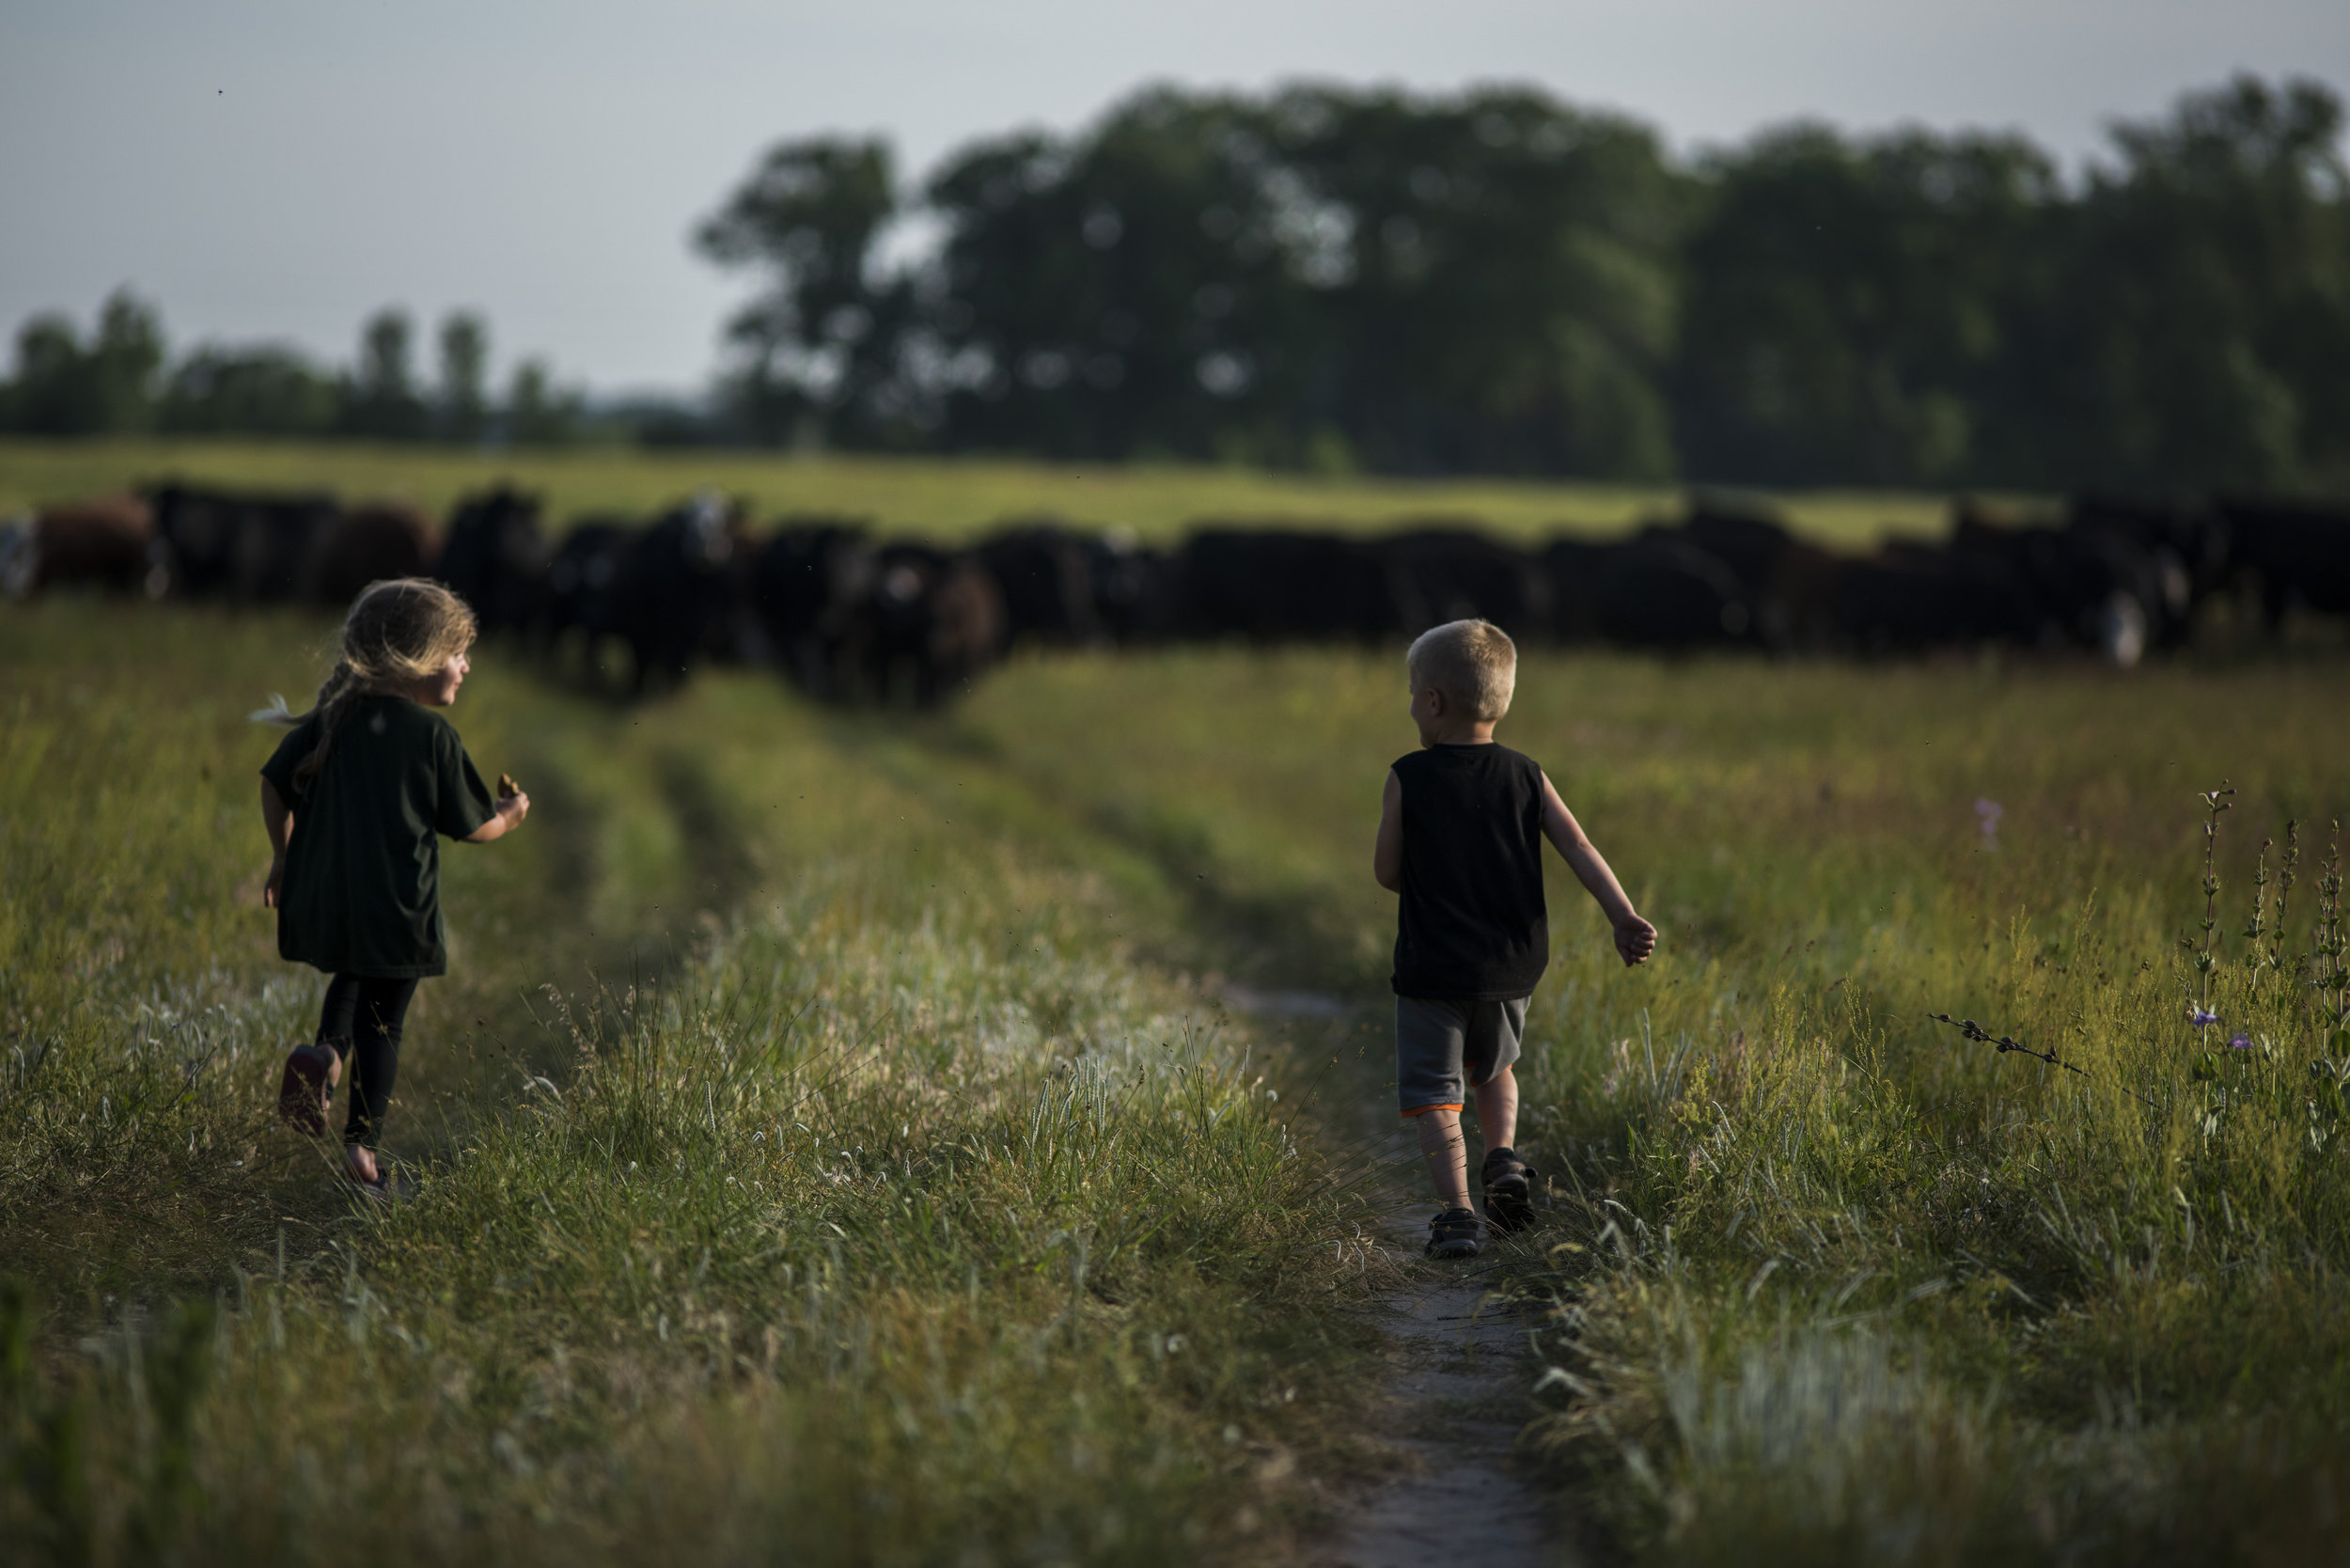 Cousins Leah and Trigg run towards a group of cows in the pasture during a family picnic.